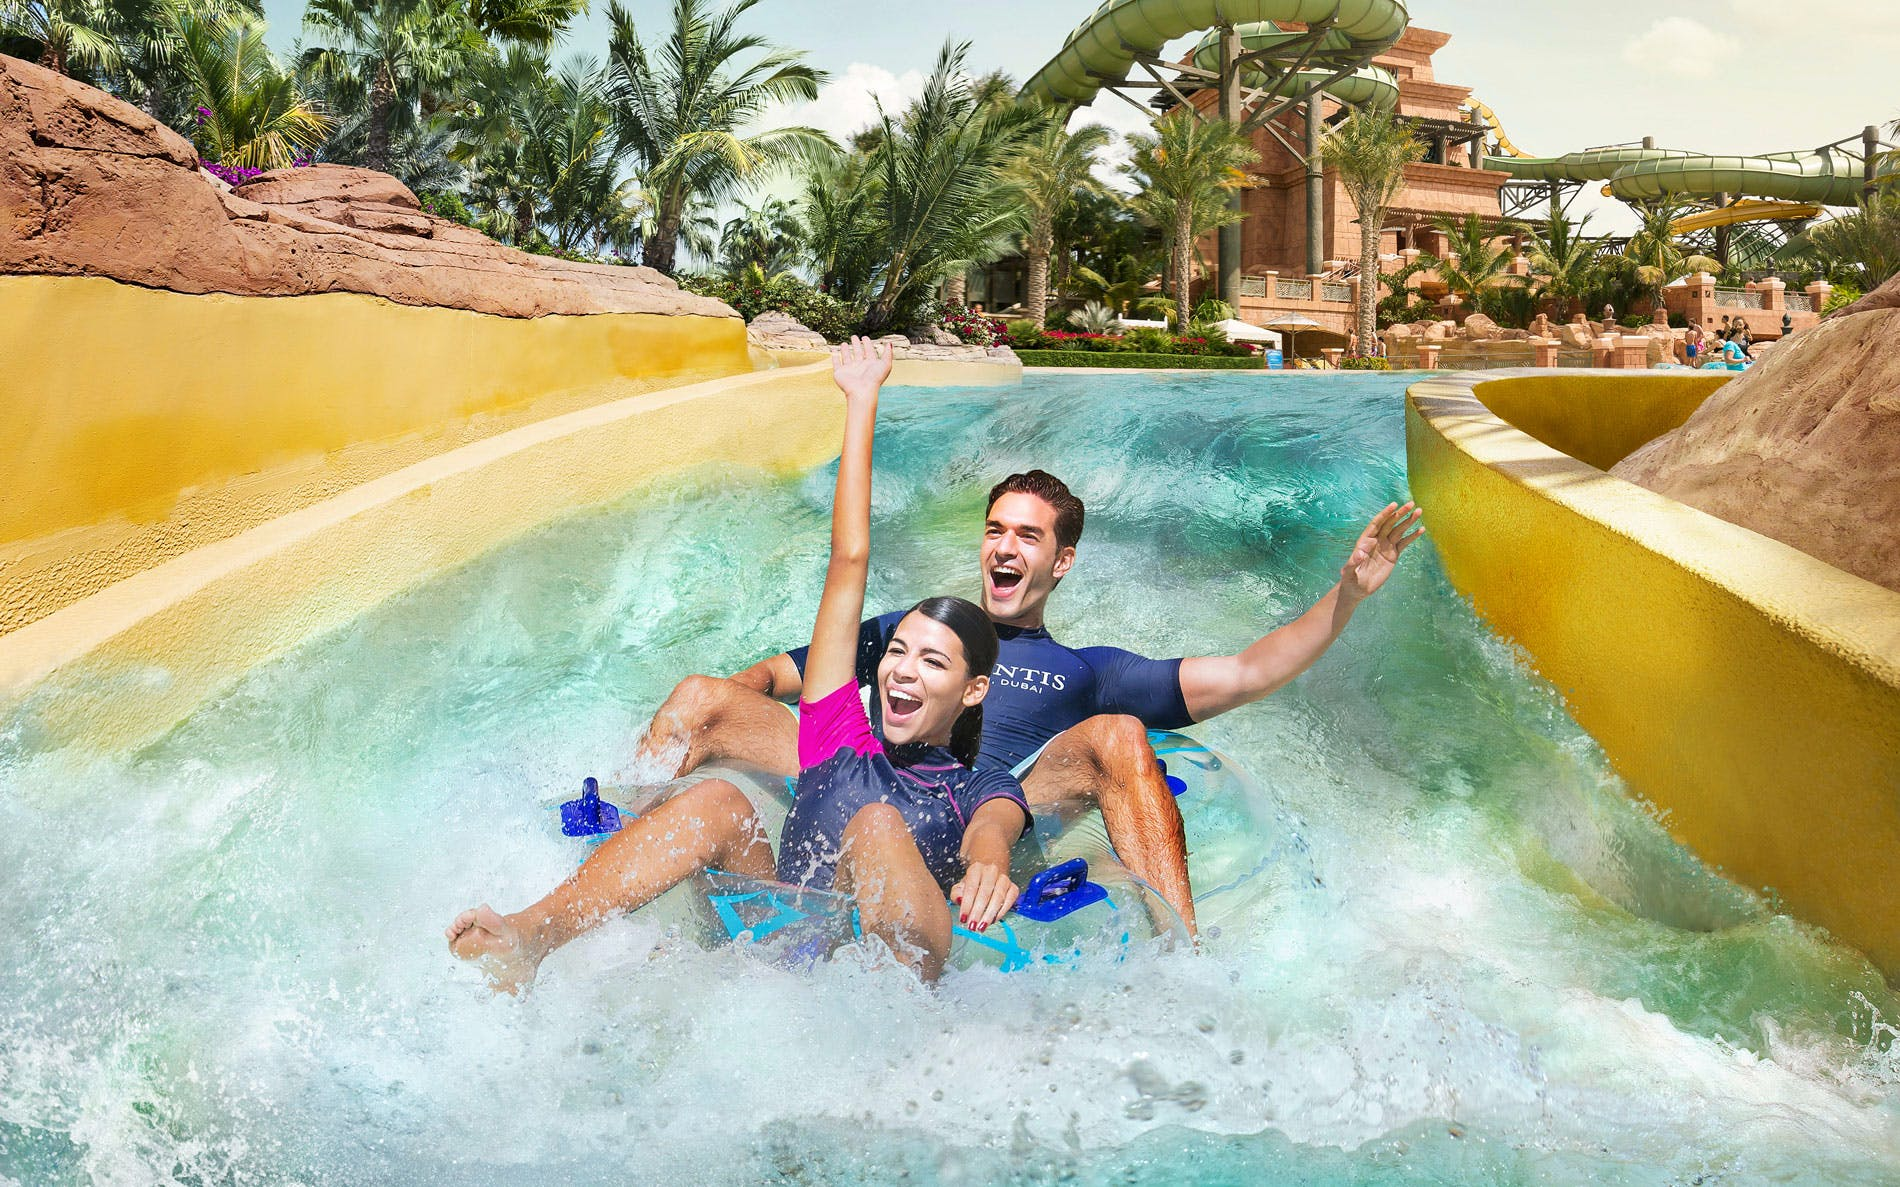 adventure combo: aquaventure waterpark + 30 mins jet ski-1